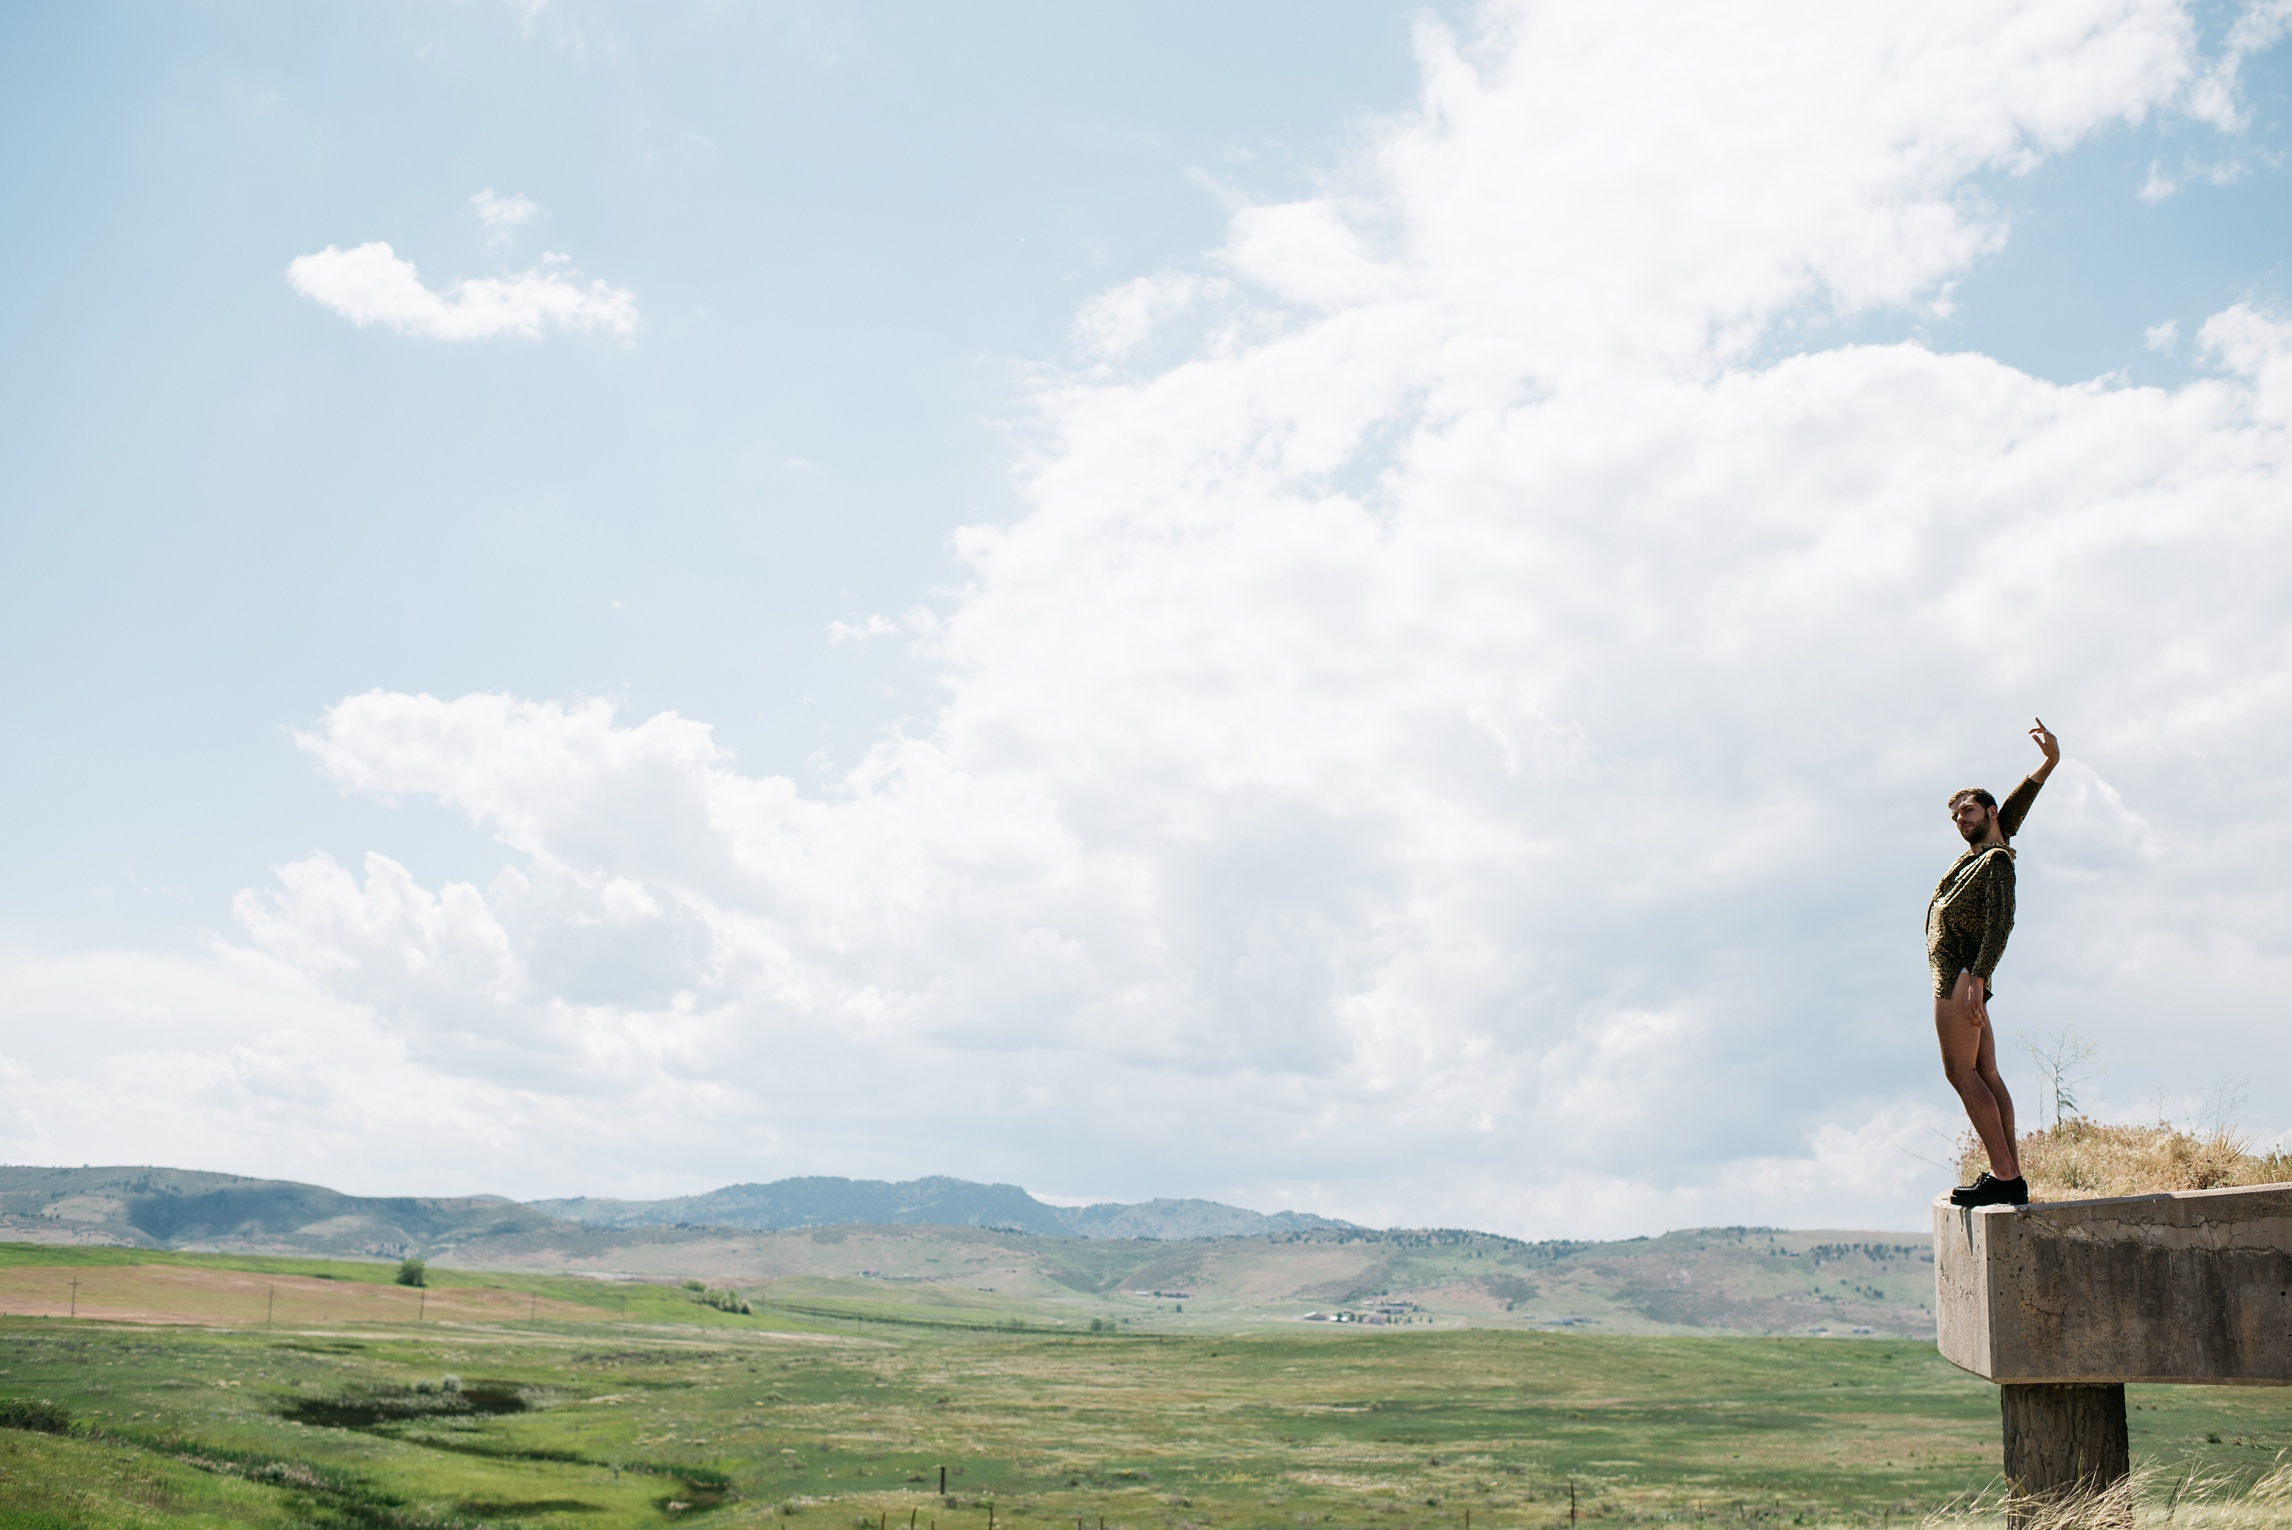 Ryan Page, dancer, against a sweeping Colorado backdrop. Photography by Sonja Salzburg of Sonja K Photography.